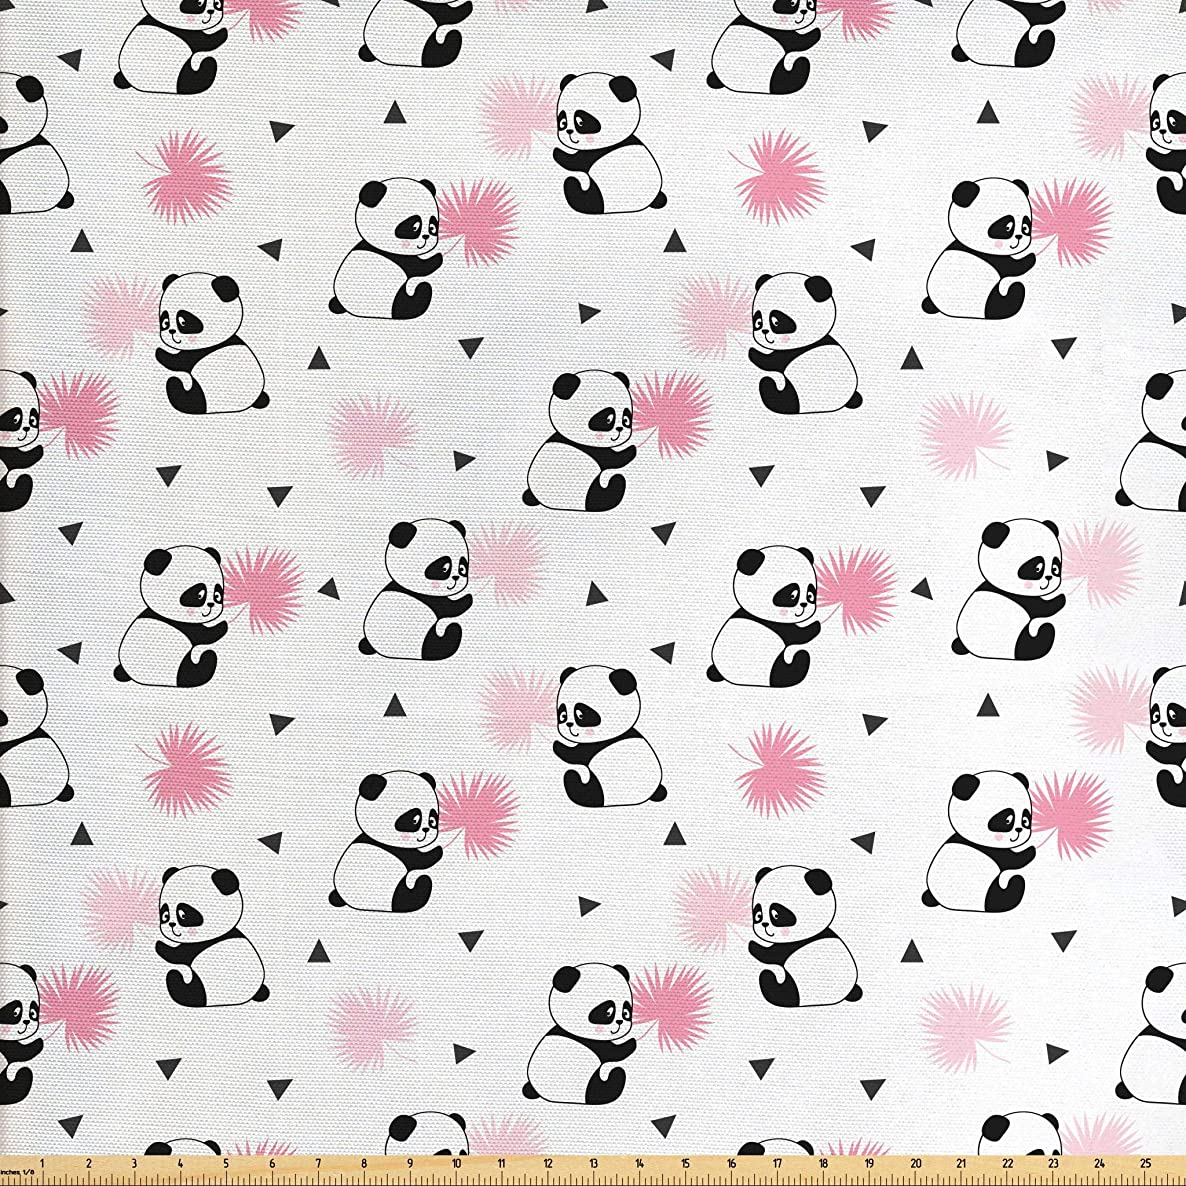 Lunarable Panda Fabric The Yard, Childrens Cartoon Style Bear Drawings Pink Foliage Leaves Chinese, Decorative Fabric Upholstery Home Accents, 2 Yards, Pale Pink Rose Black